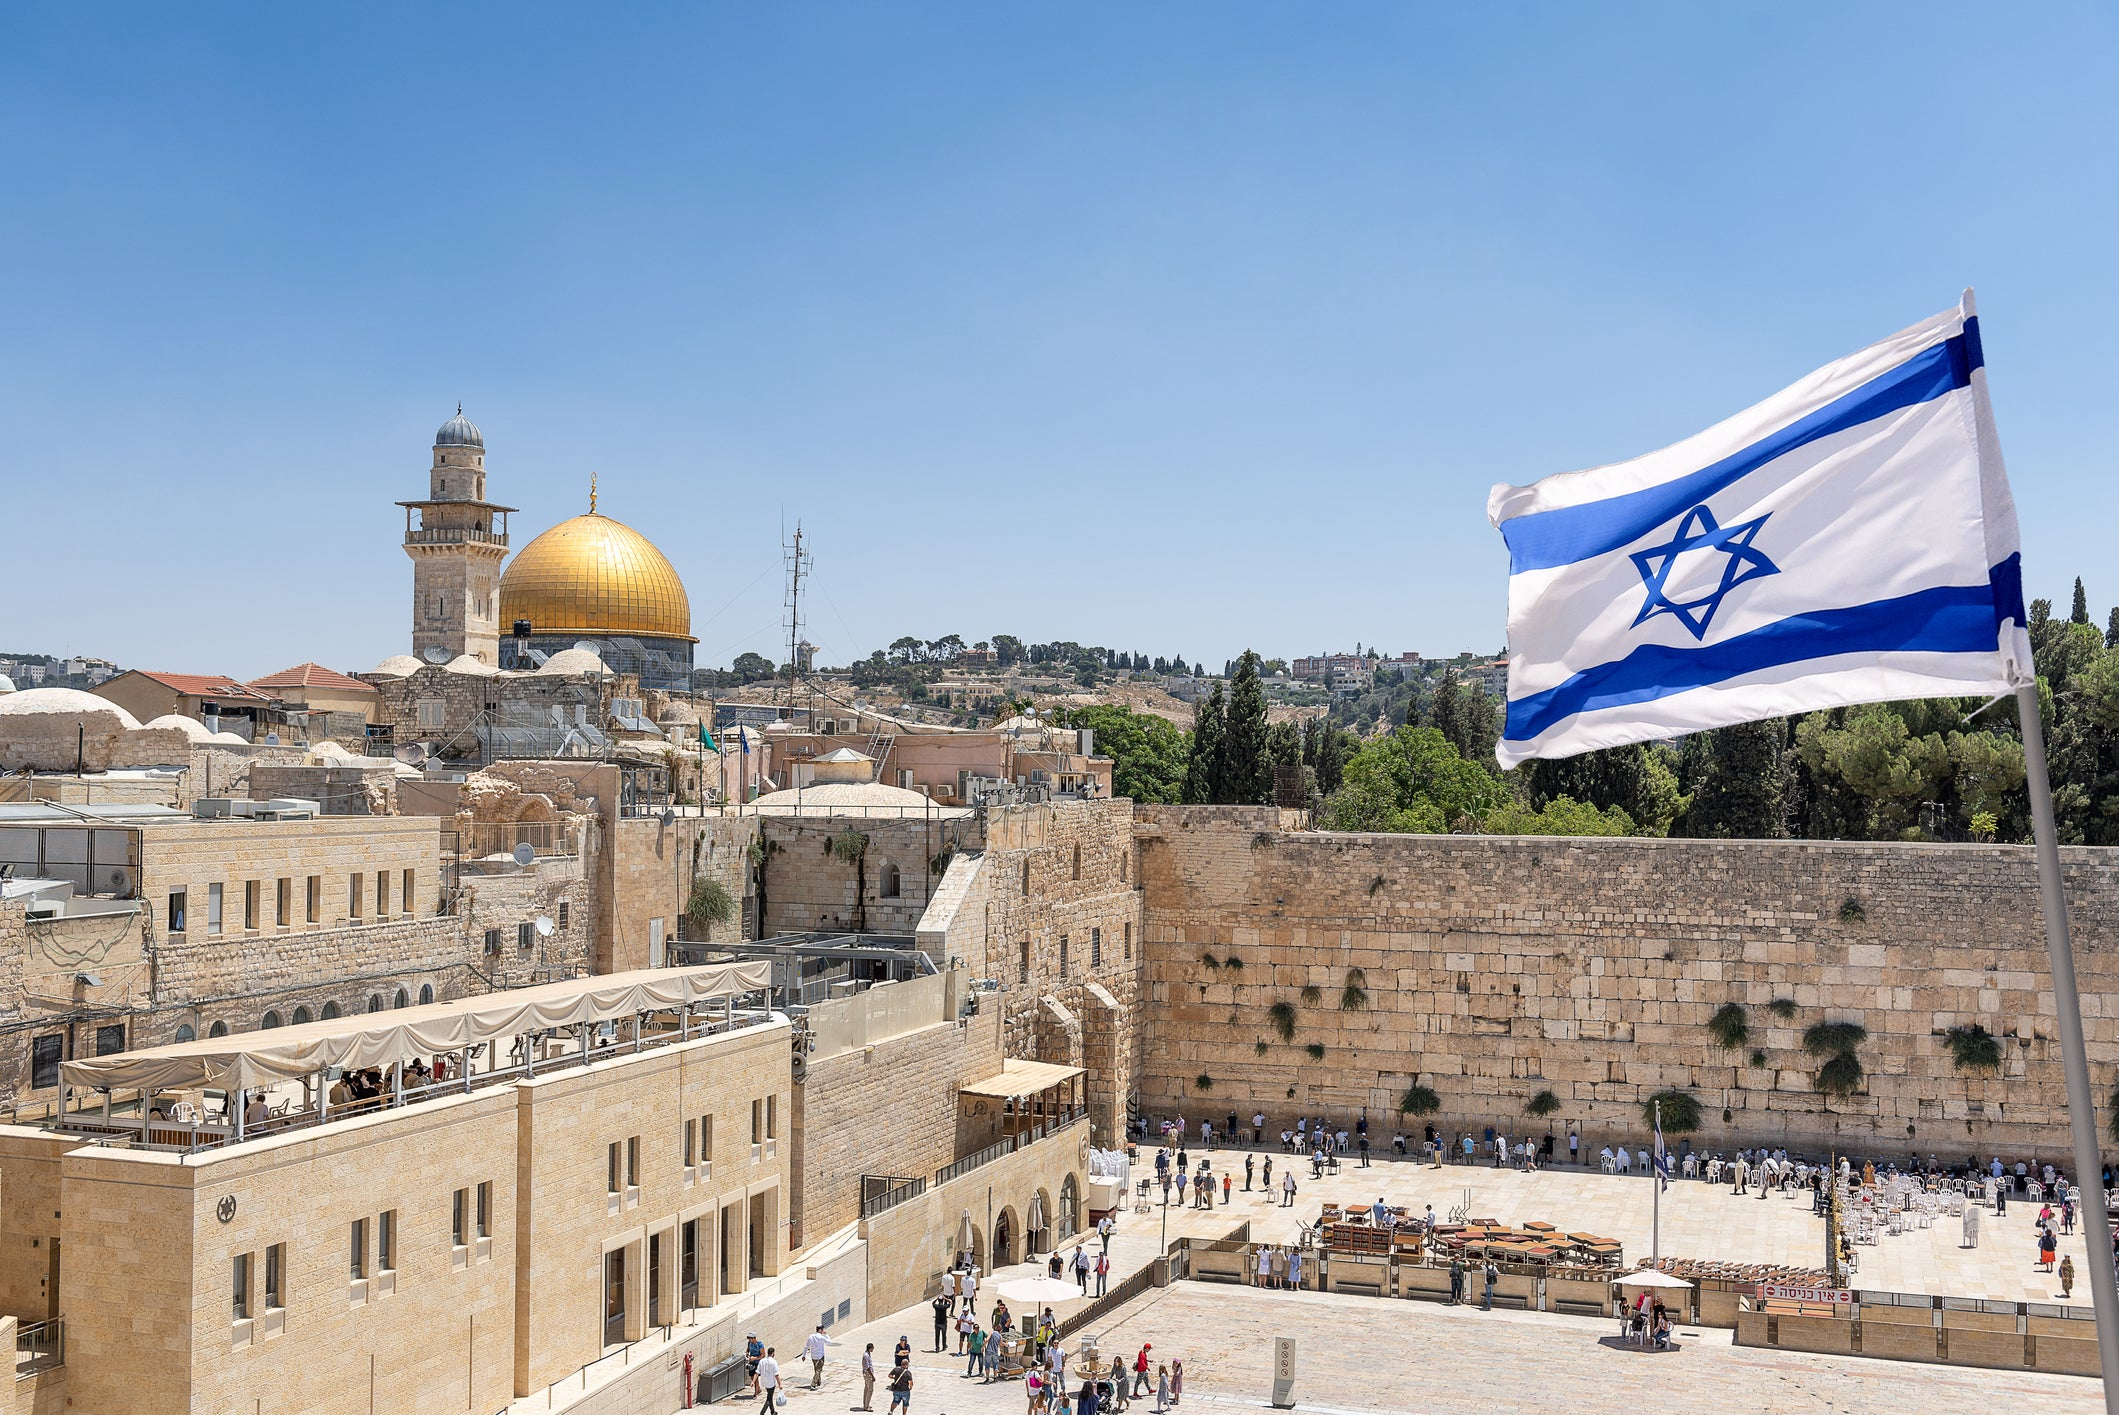 Vaccinated? Here's how to get to Israel using points and miles - The Points Guy